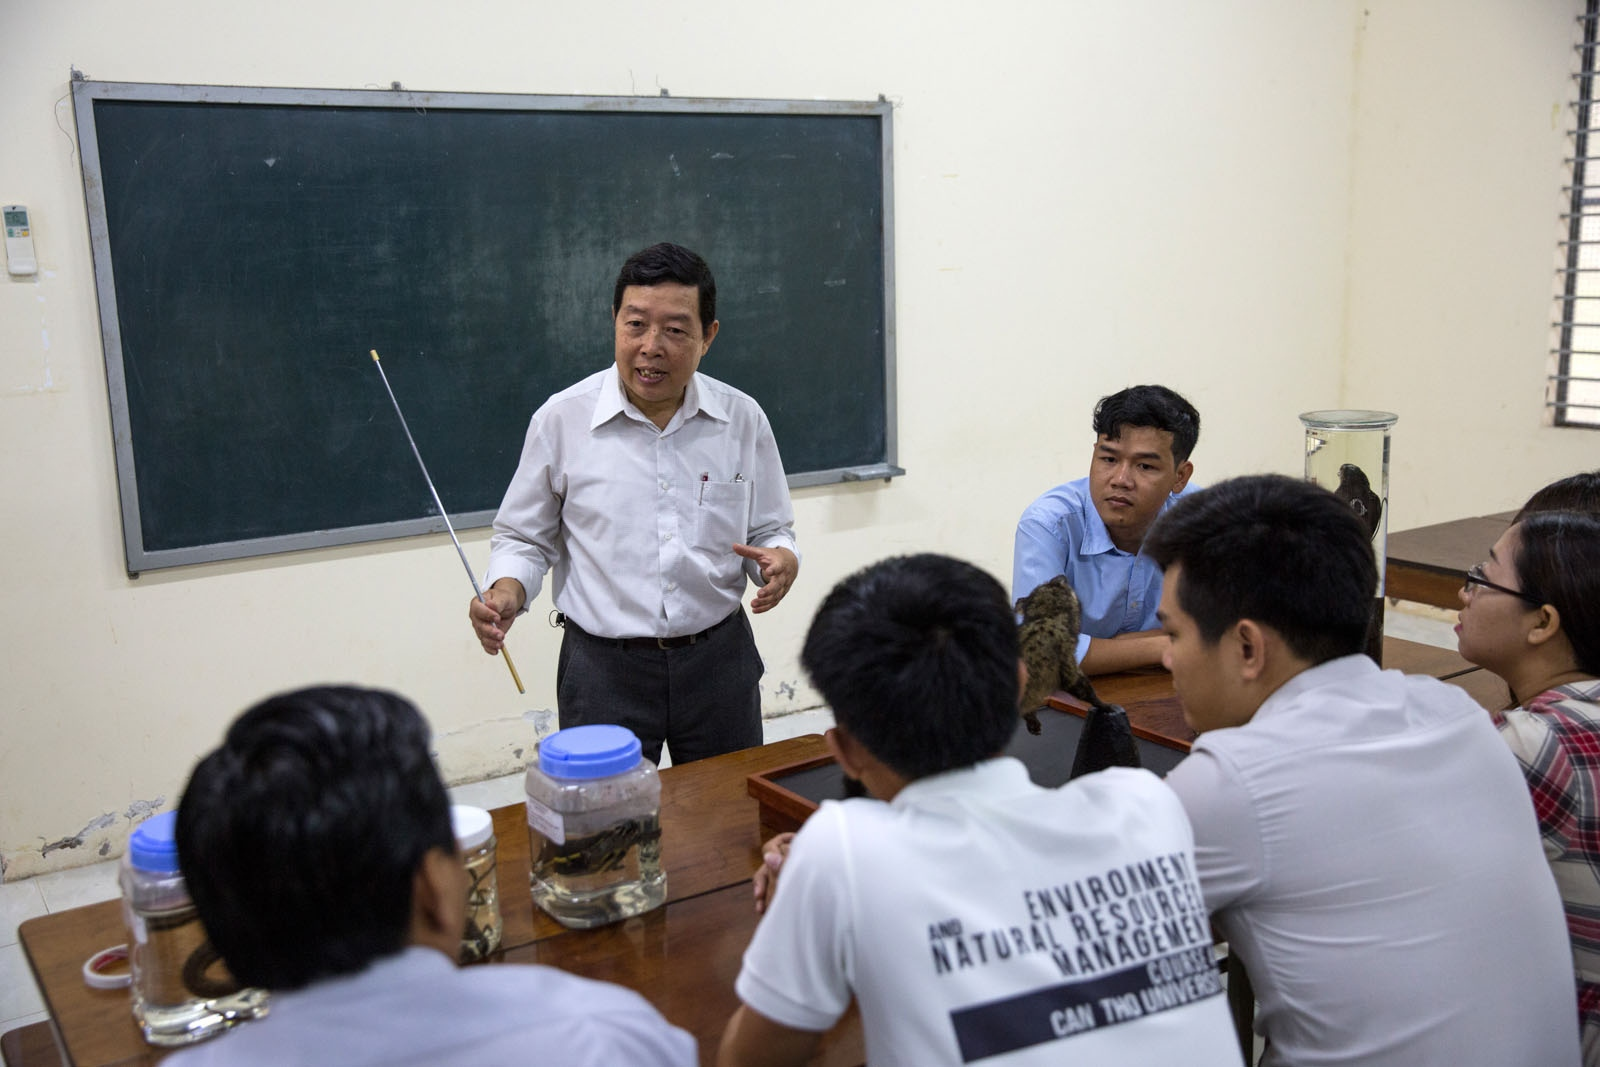 Dr Duong Van Ni explains to students at the College of Environment & Natural Resources Department of Can Tho University how his salinity test works. Several years ago, Dr Ni and his team created this simple test kit that would help farmers test the salinity of the water before irrigating their rice fields or shrimp farms. Due to the reduced flow of the Mekong Delta and increased sea level of the ocean due to Climate Change increased salinity is a growing problem in the delta.